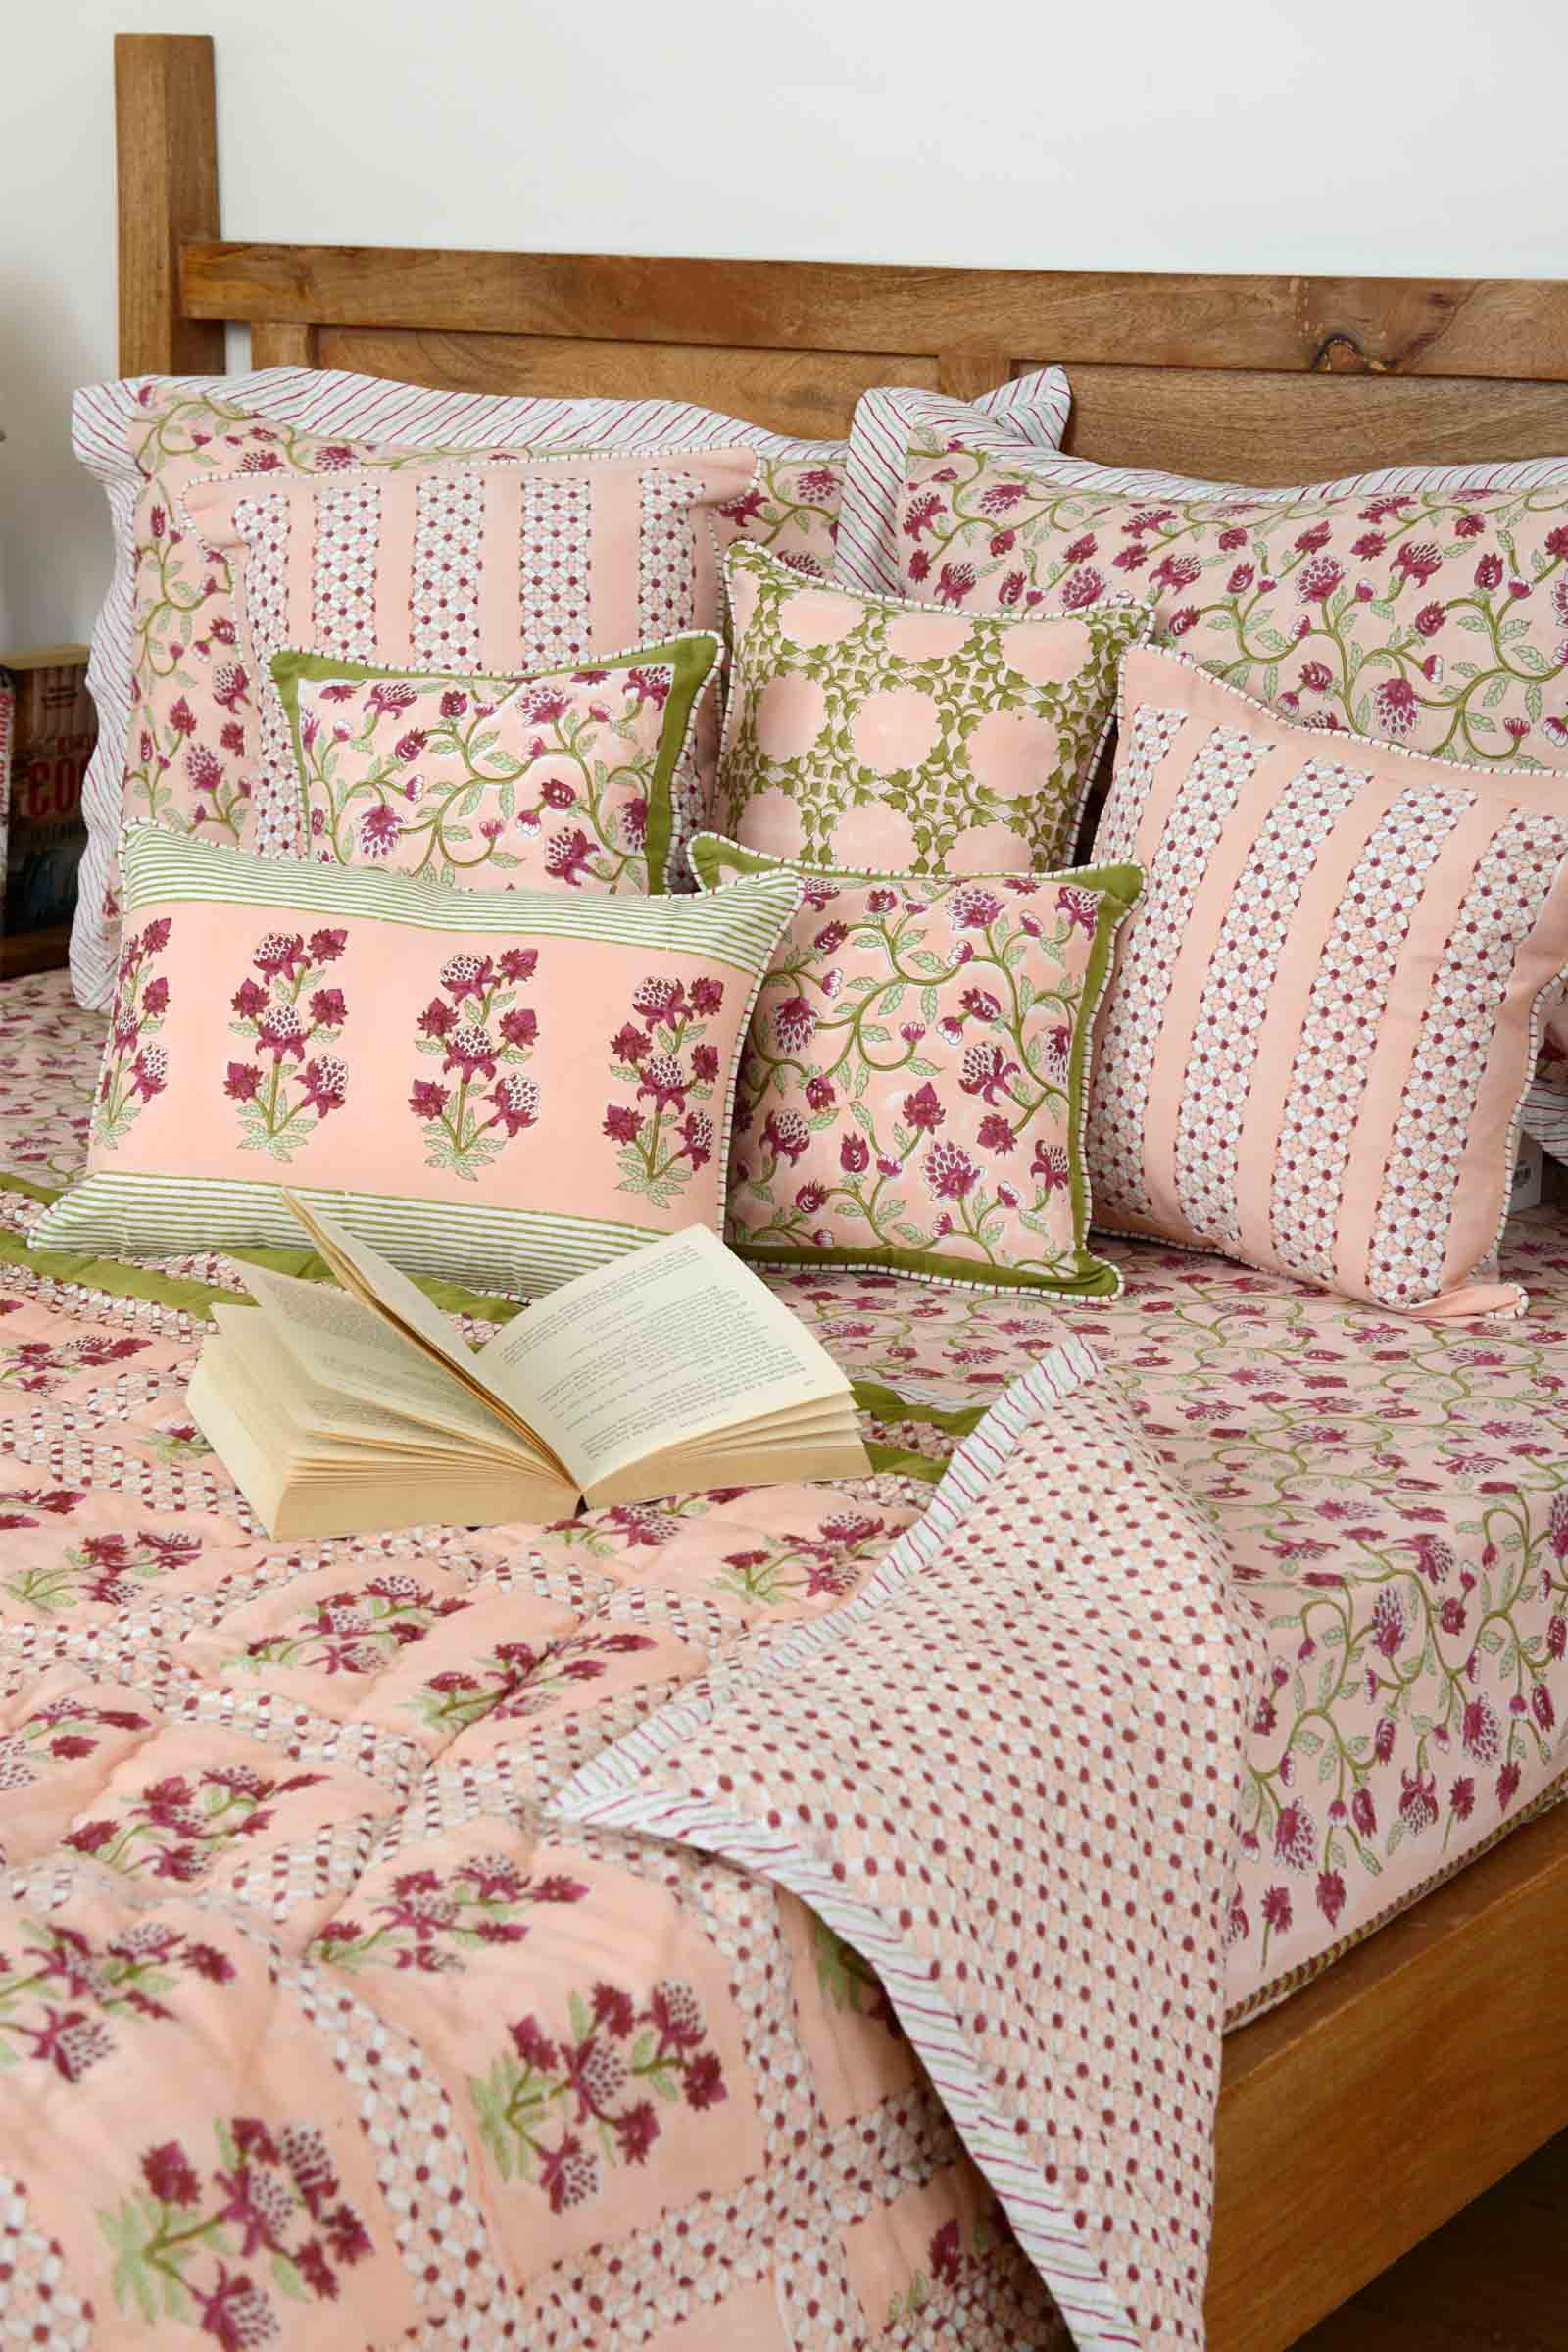 Poetic Summer Bed Cover